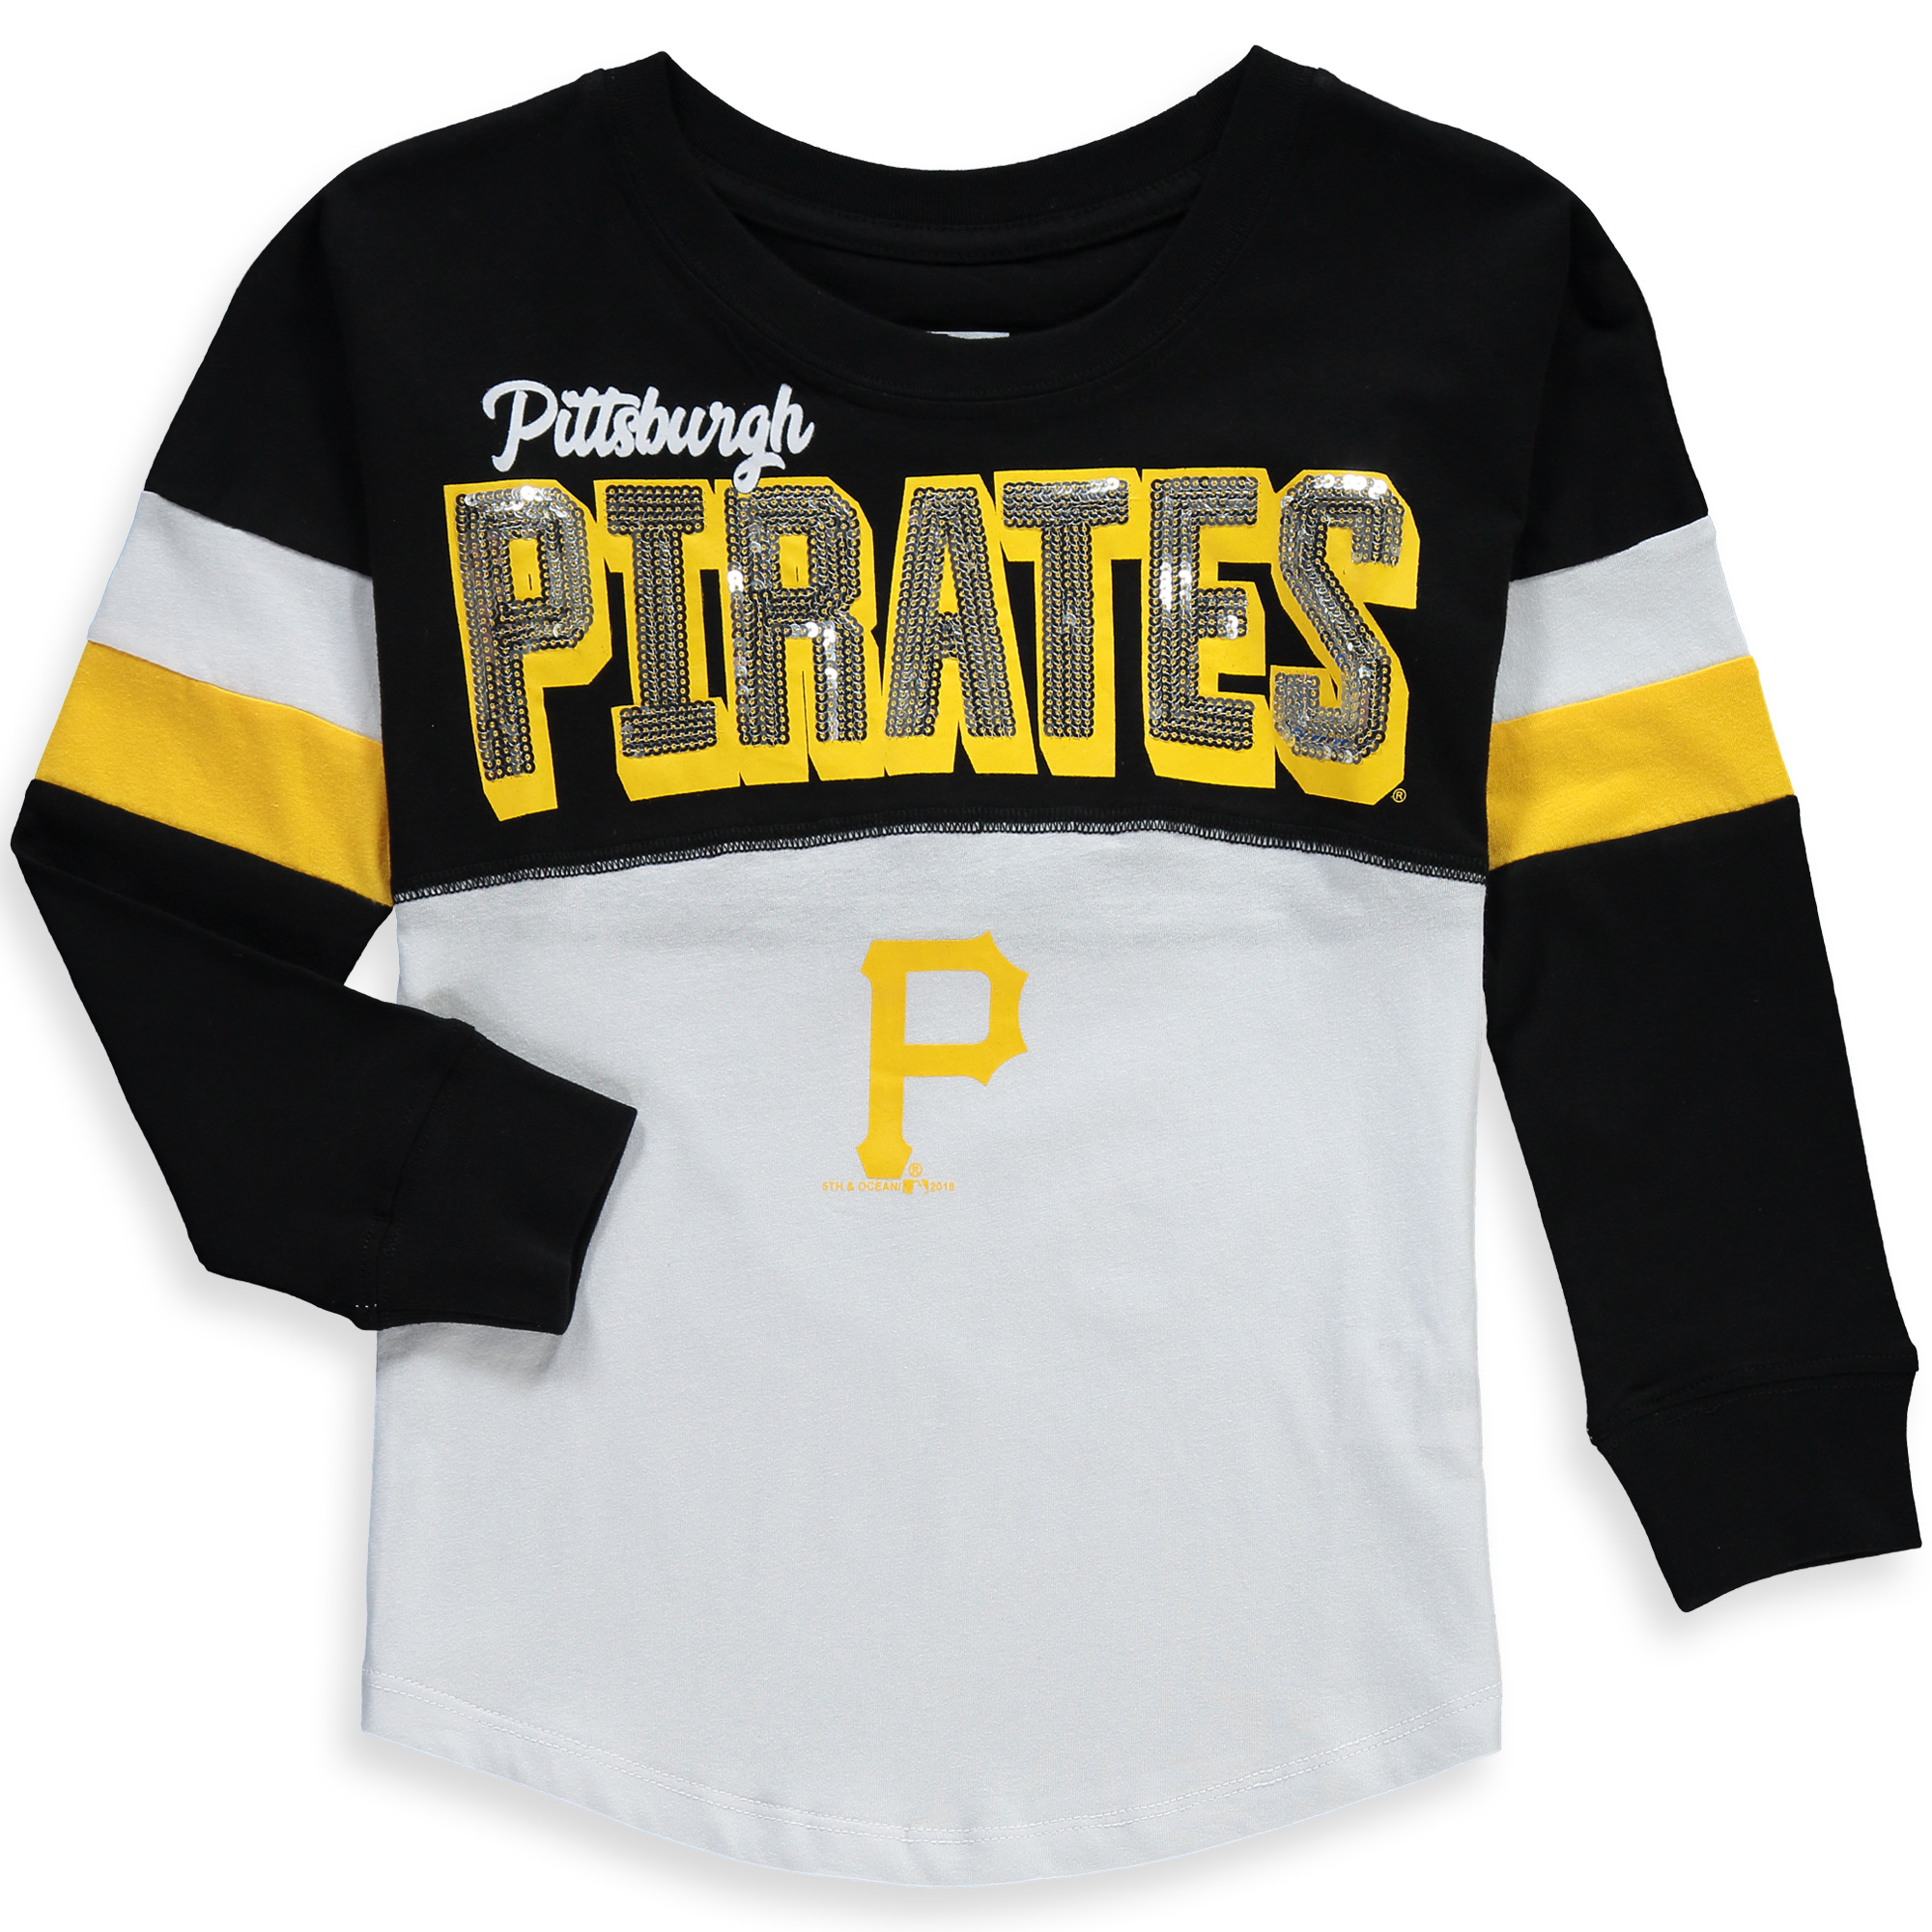 Pittsburgh Pirates 5th & Ocean by New Era Girls Youth Baby Jersey Long Sleeve T-Shirt - Black/White